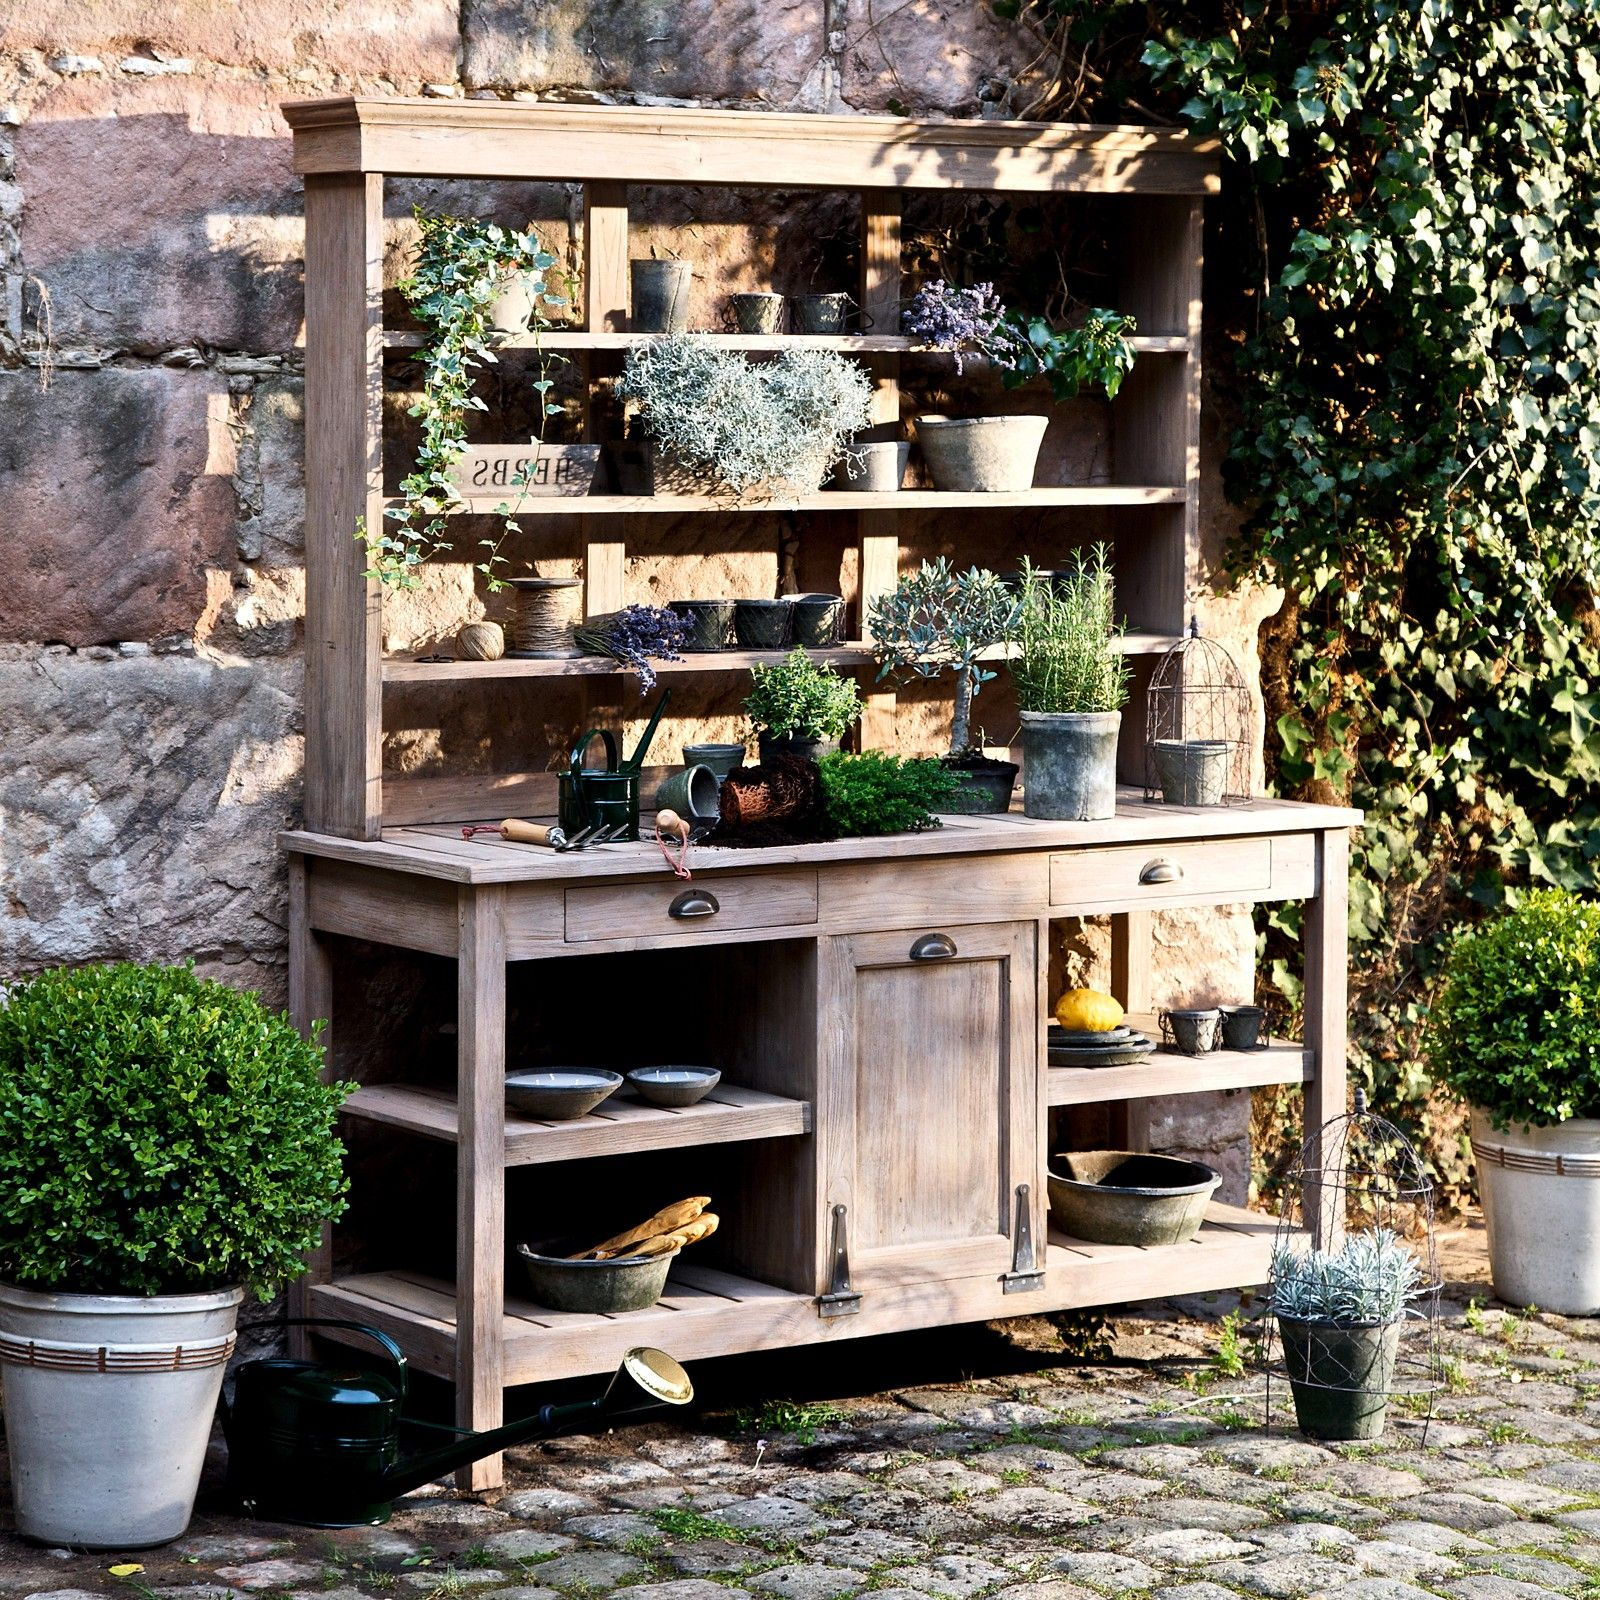 Old Teakholz Bank Gartenschrank Aus Teakholz Potting Bench Pinterest Garden